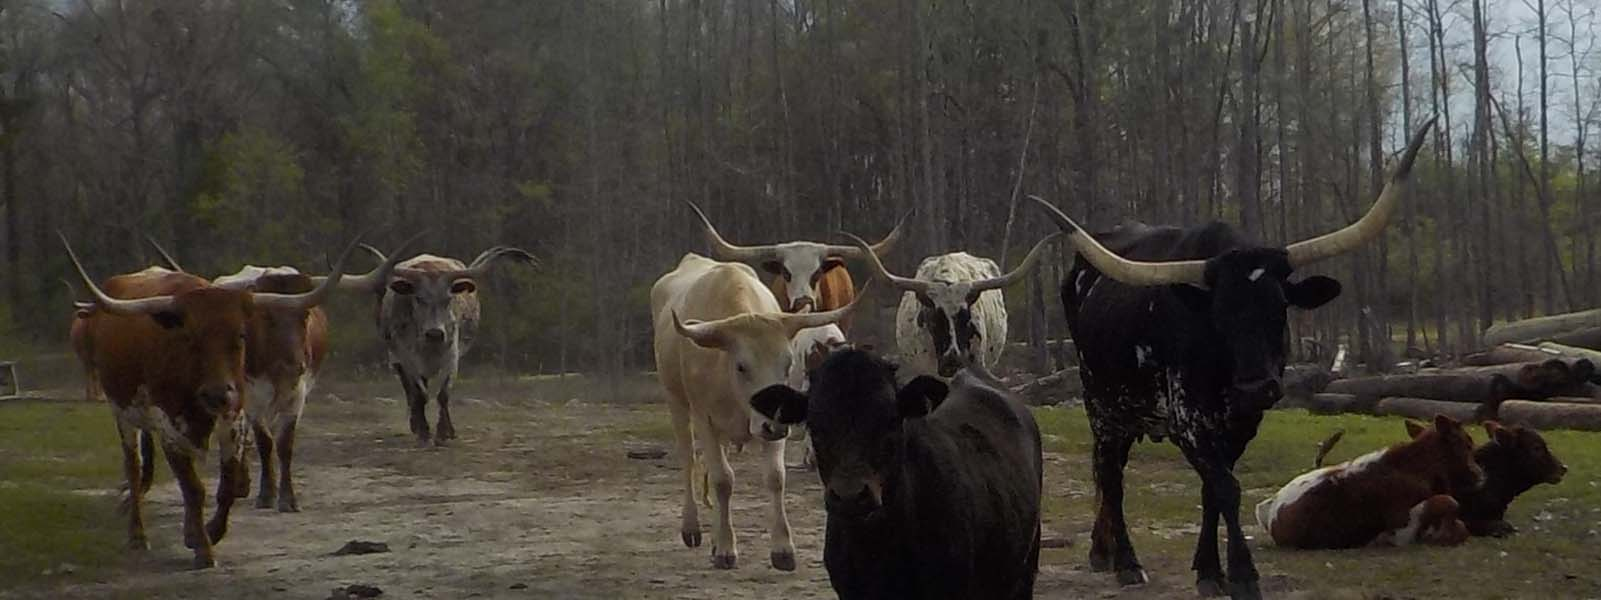 Longhorn cattle grazing at A-Okay campground